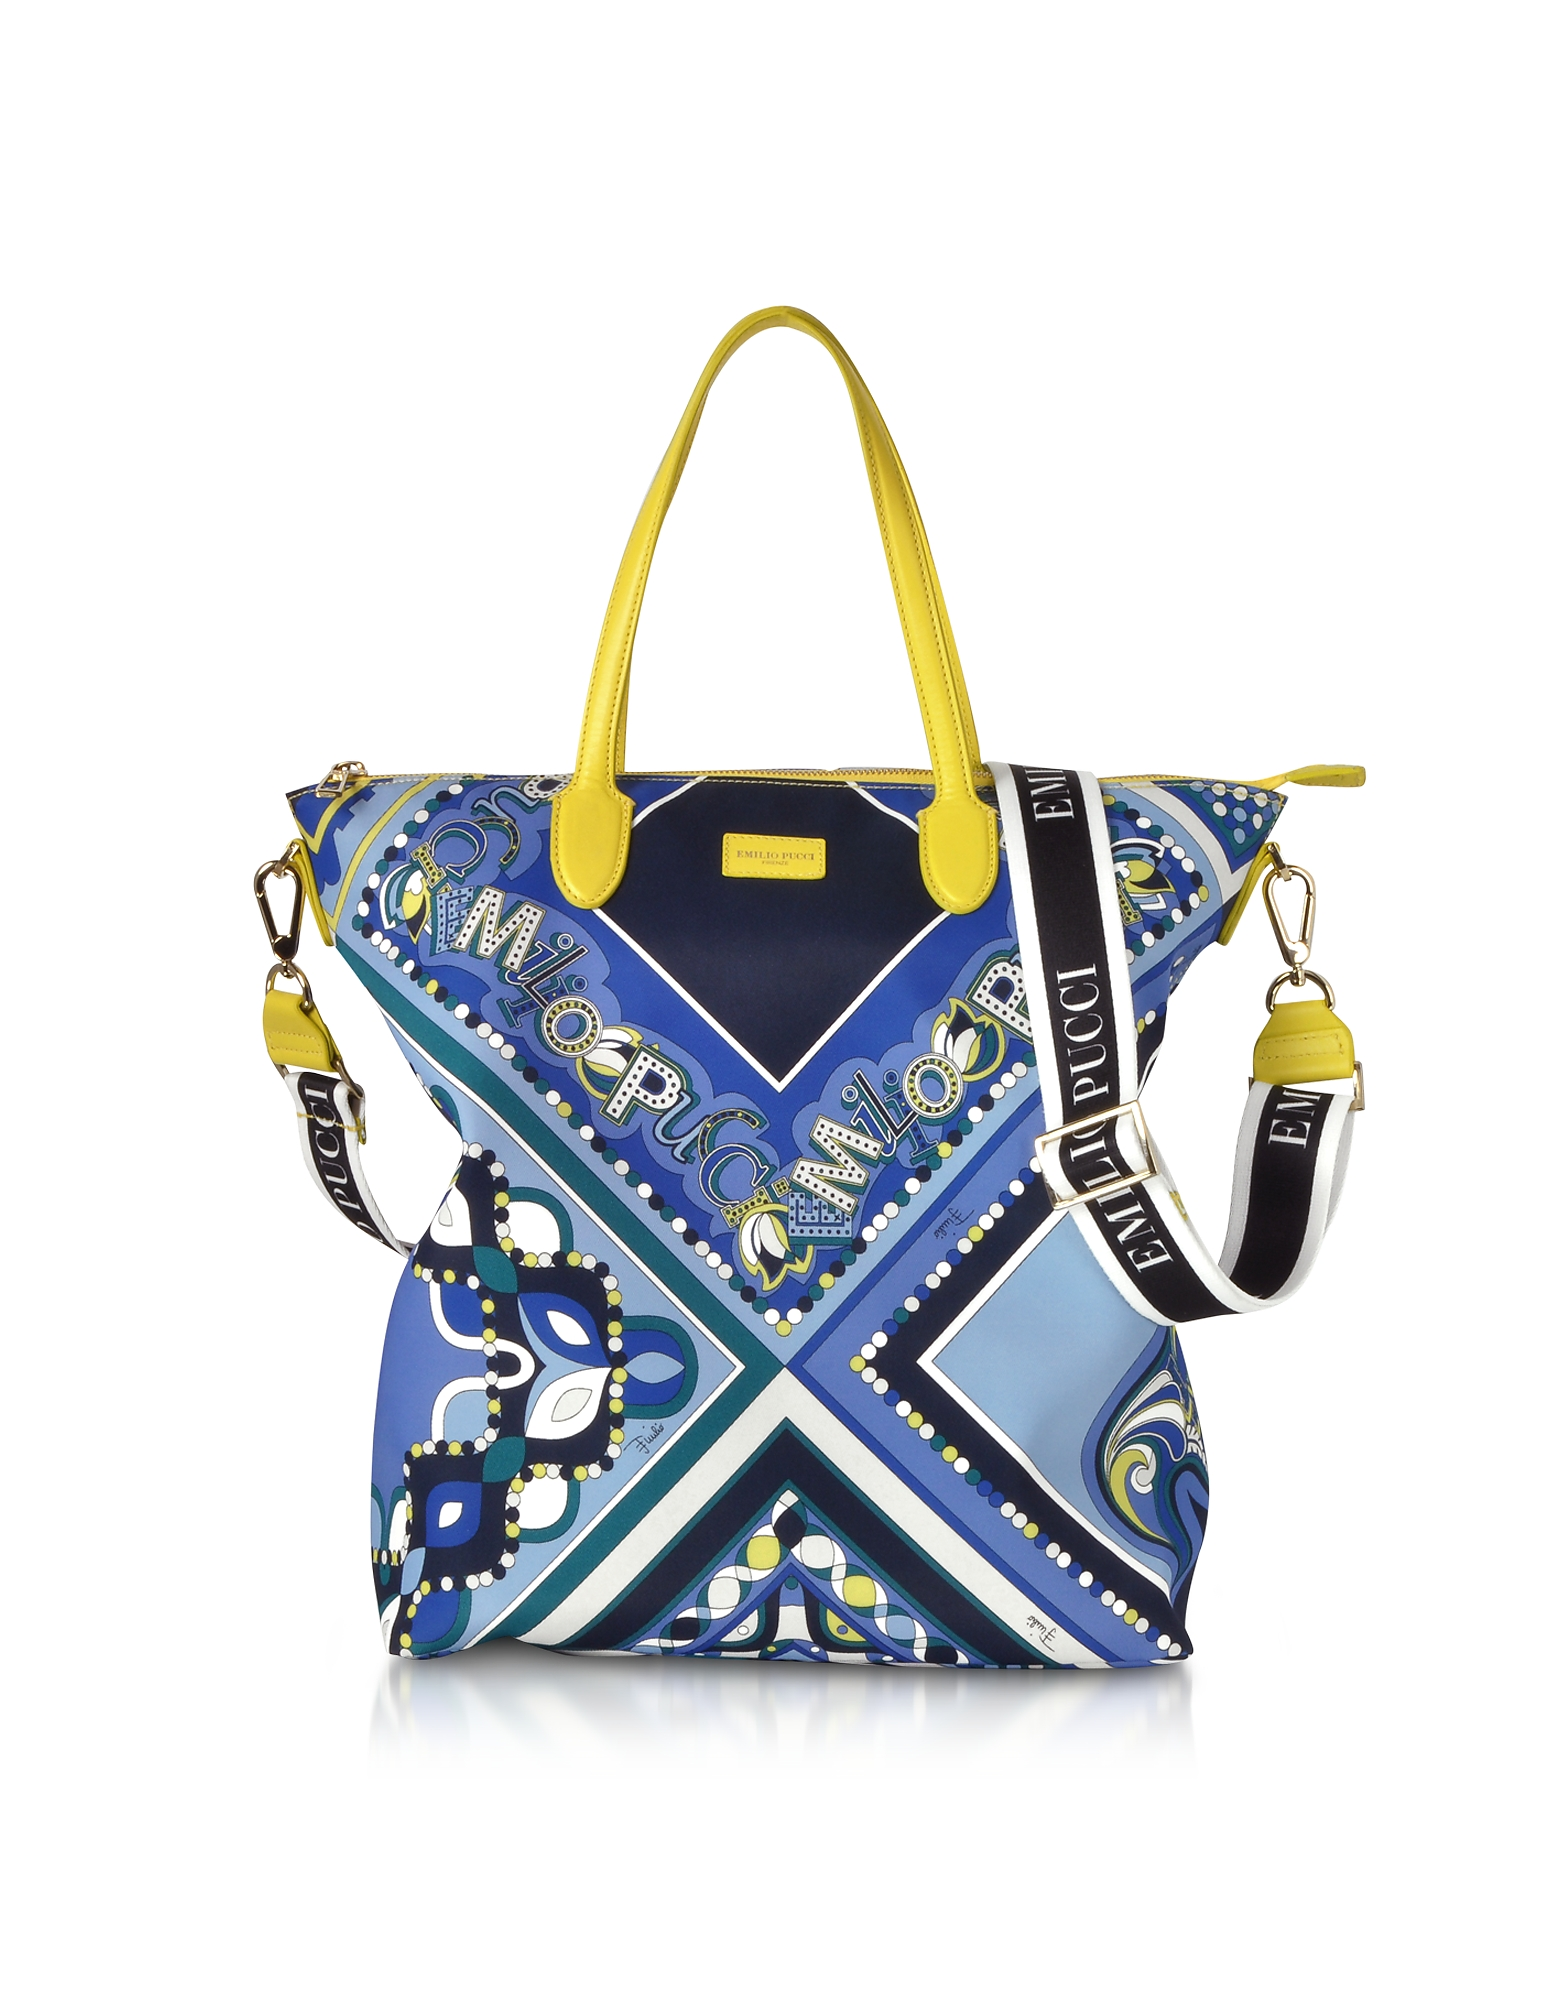 Cobalt and Petrol Blue Printed Canvas N/S Tote Bag